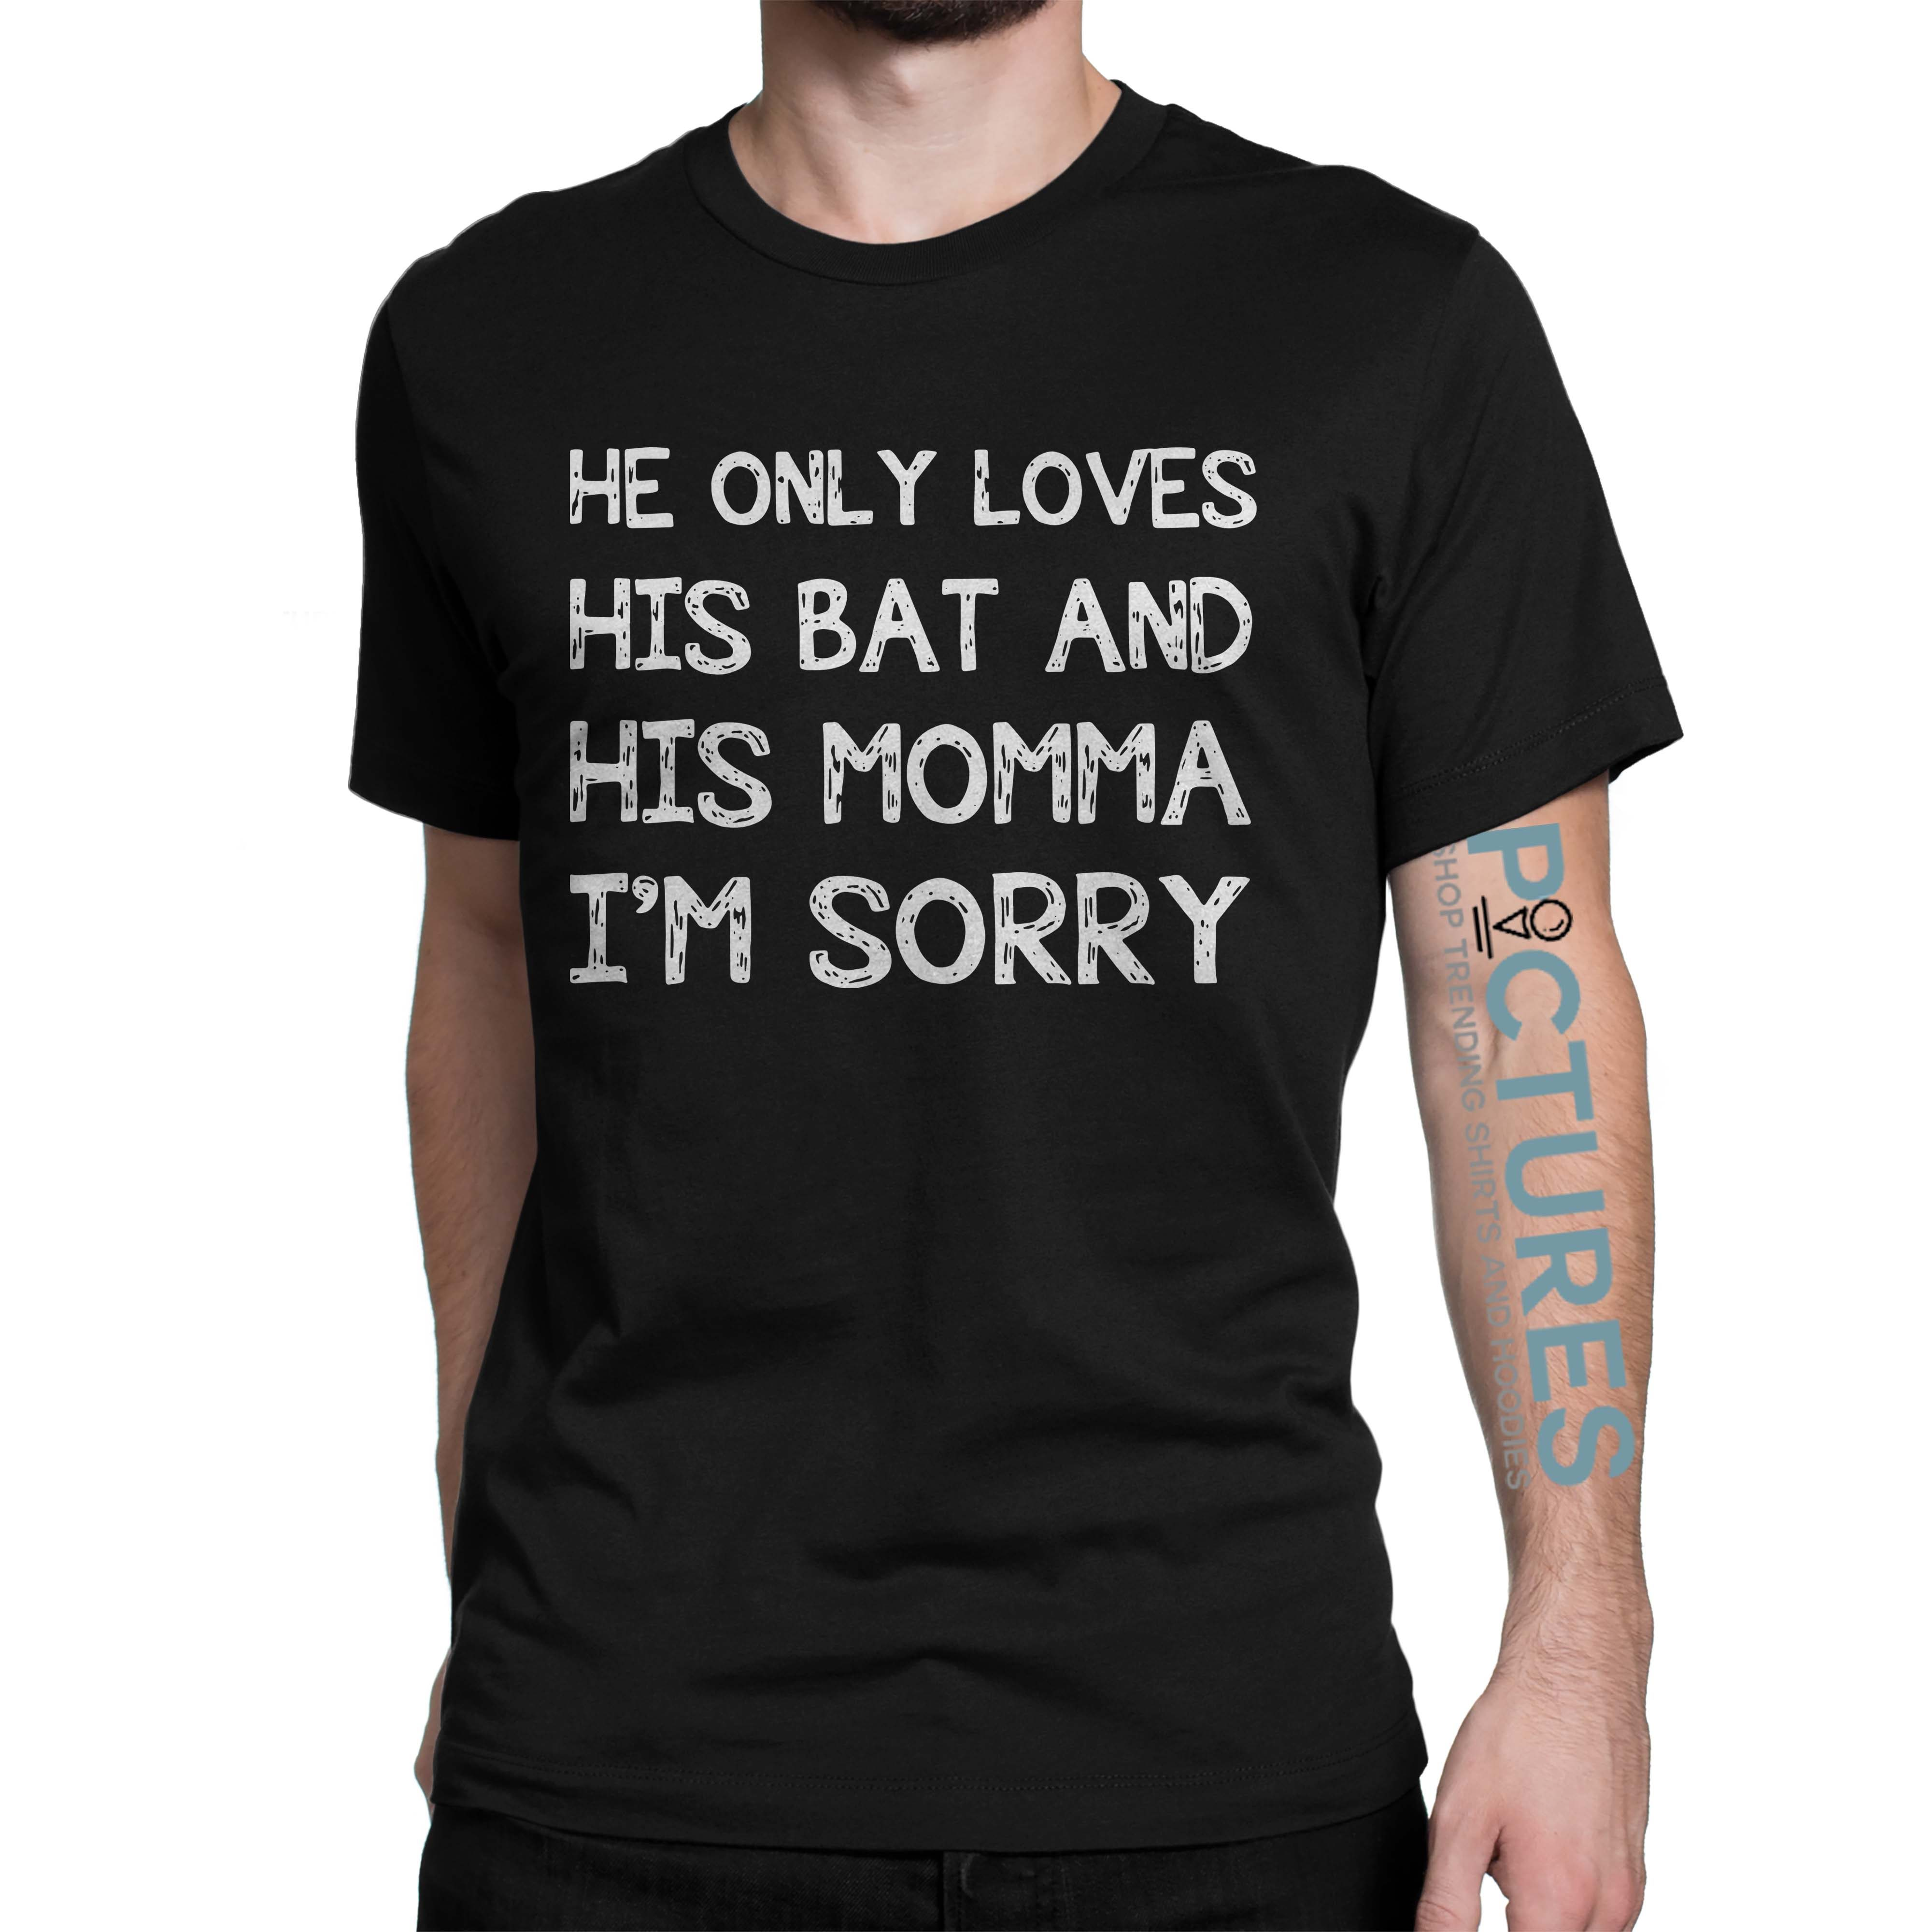 He only loves his bat and his momma I'm sorry baseball shirt